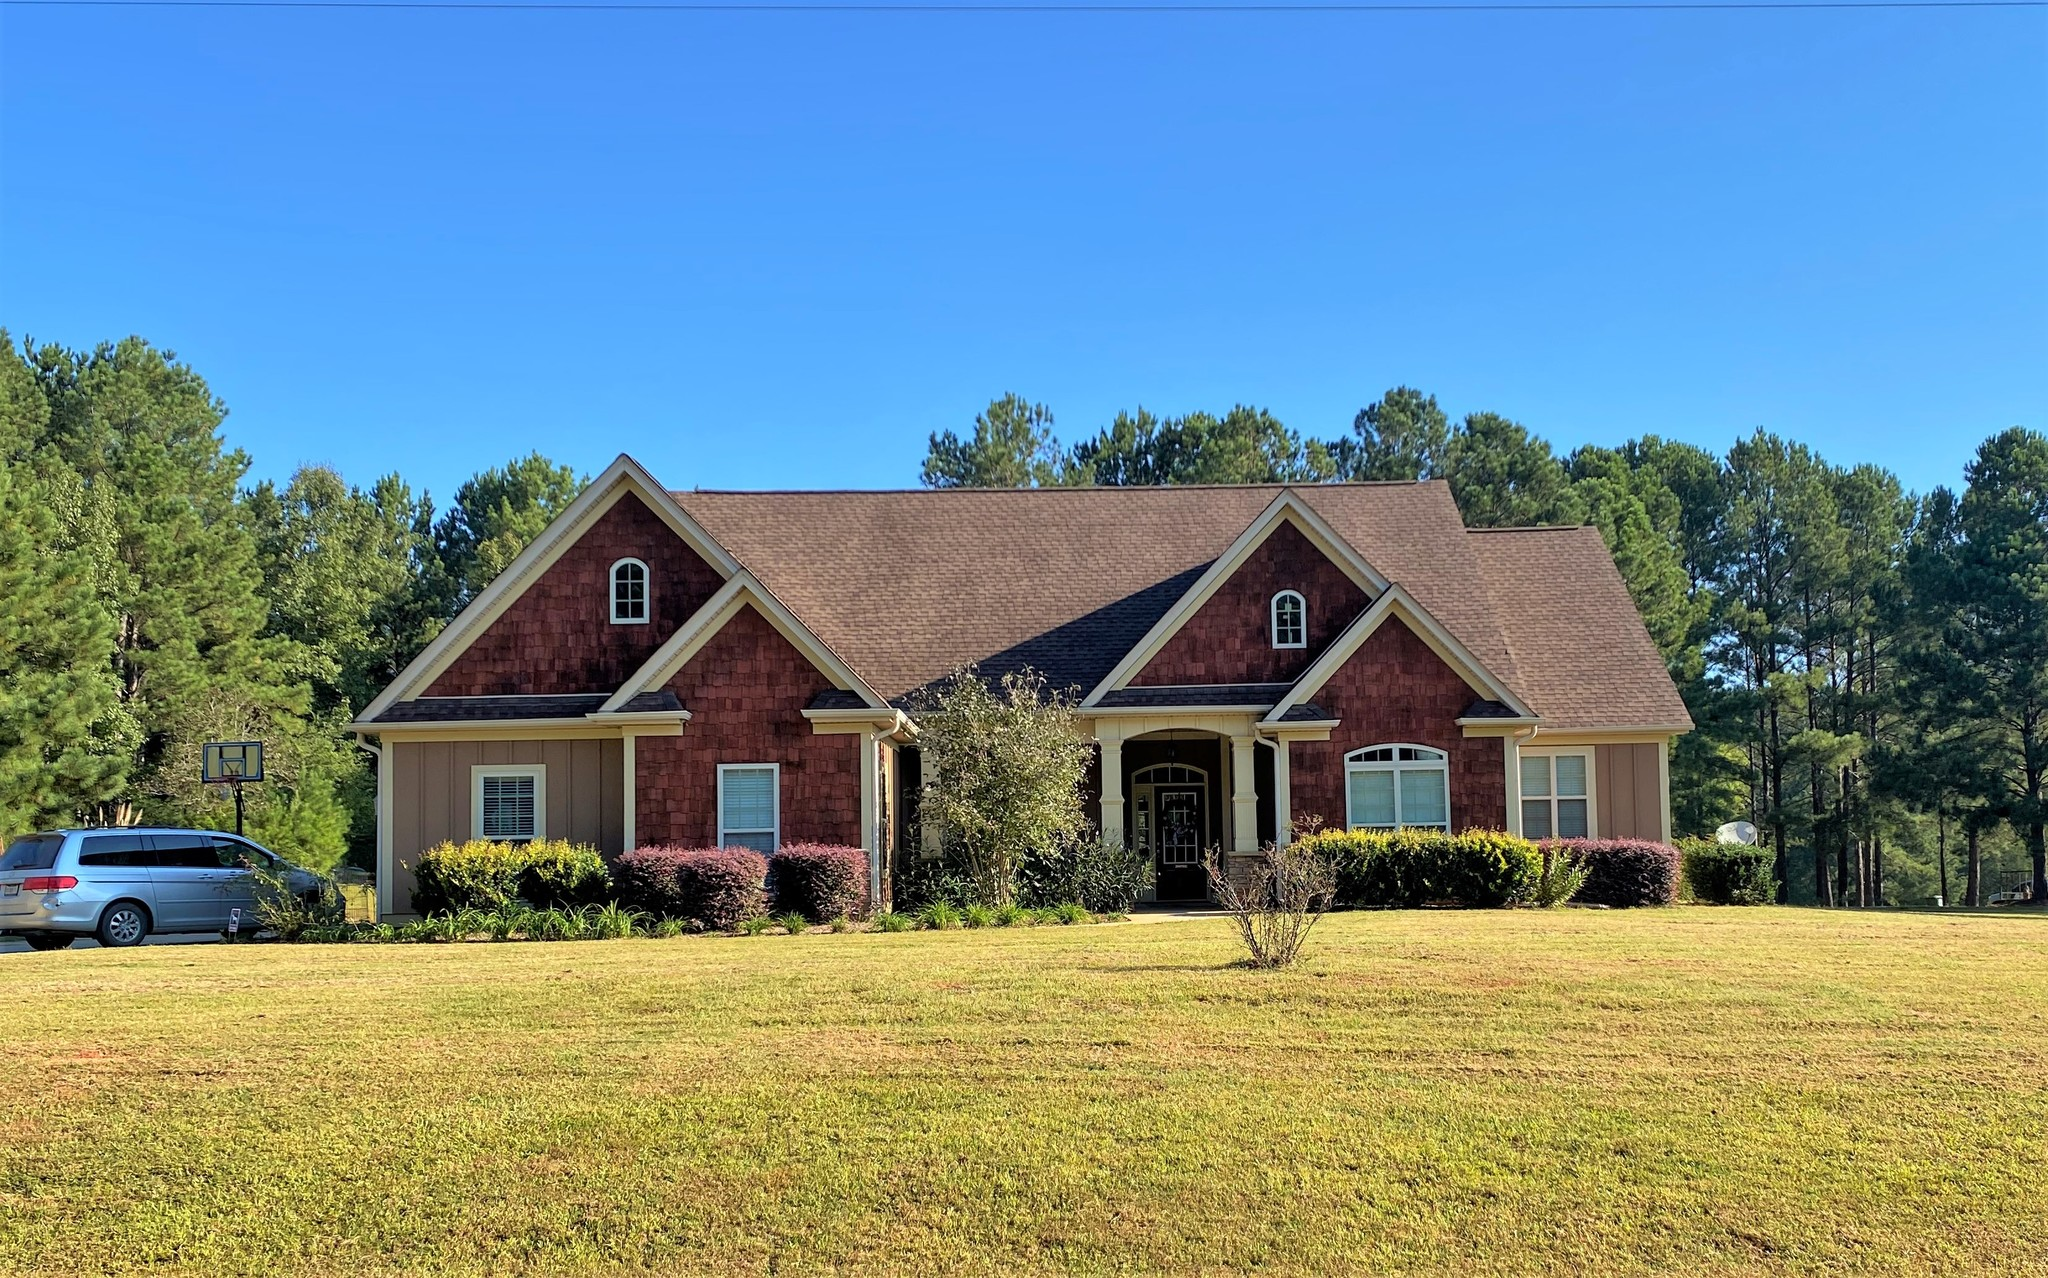 4-Bedroom House In Ranchland